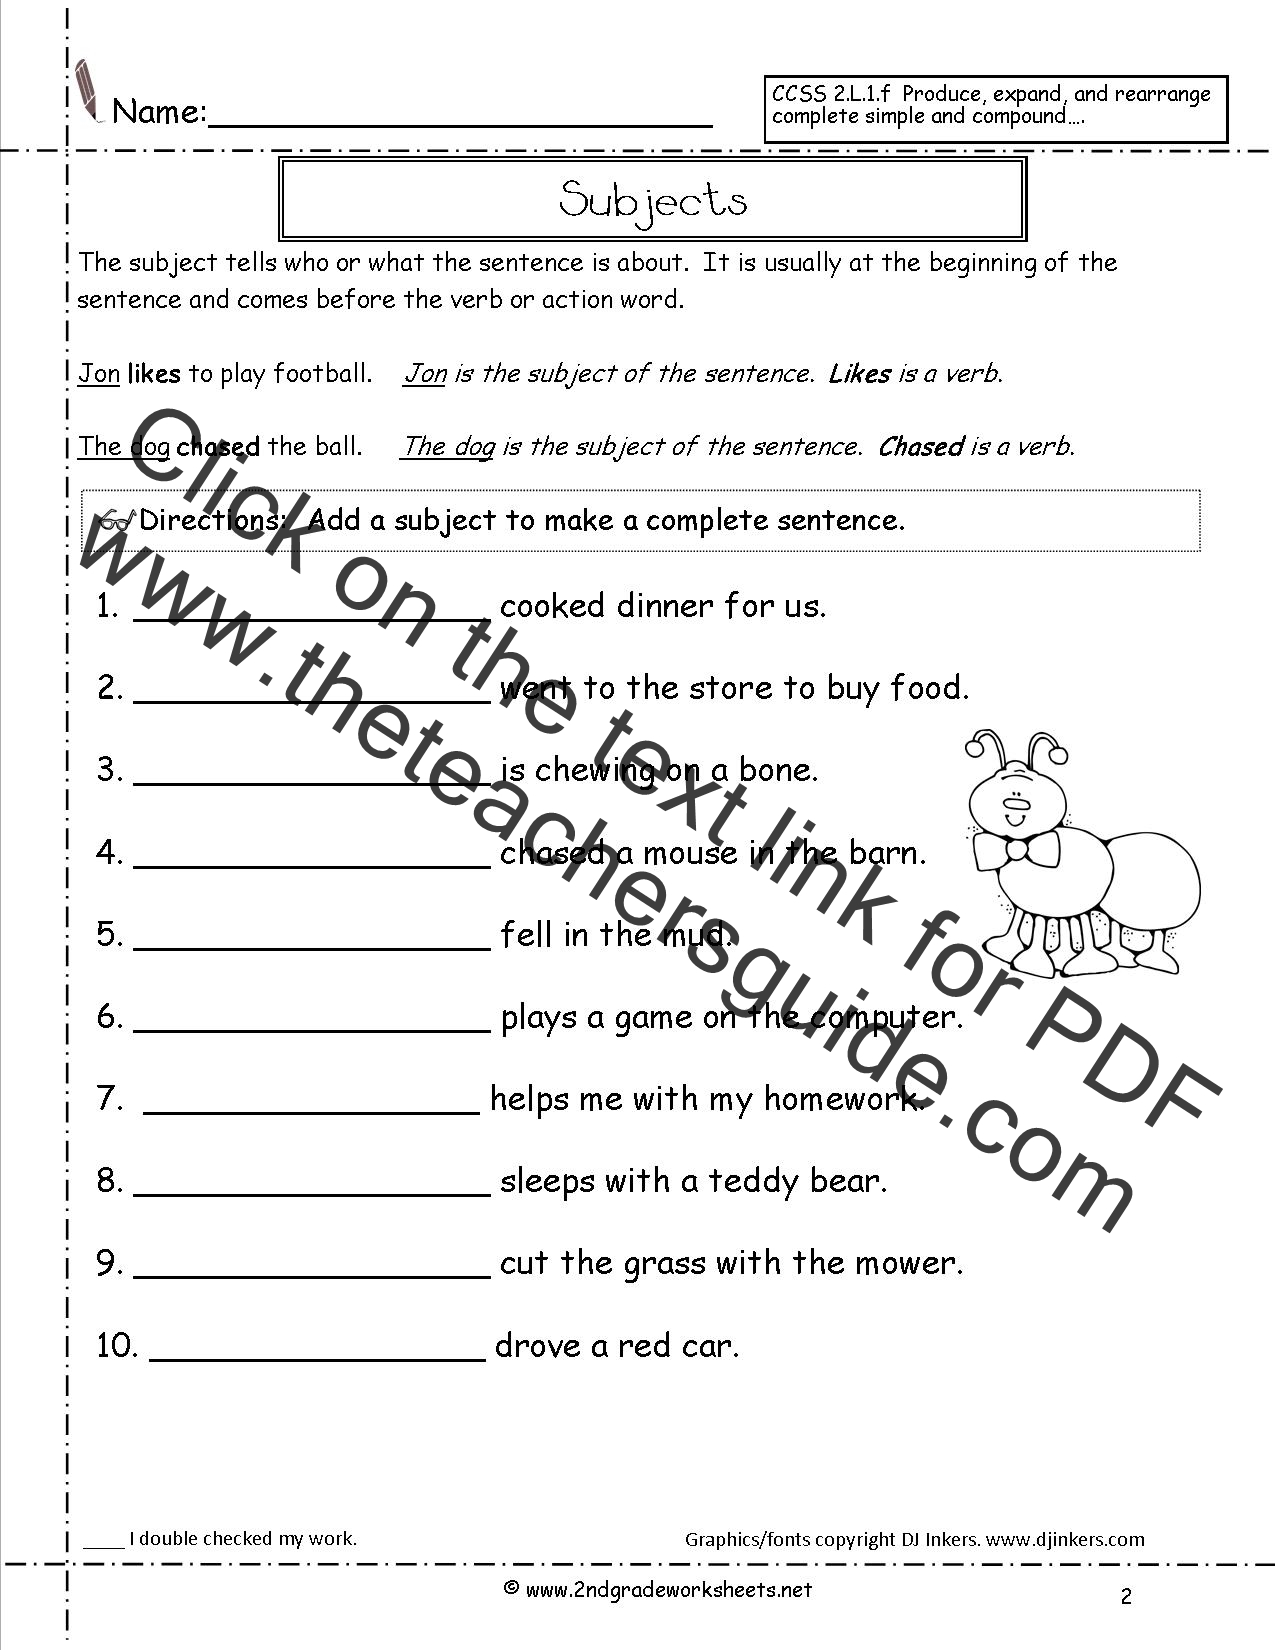 Worksheet Types Of Sentences Worksheets second grade sentences worksheets ccss 2 l 1 f subjects worksheet sentence subjects